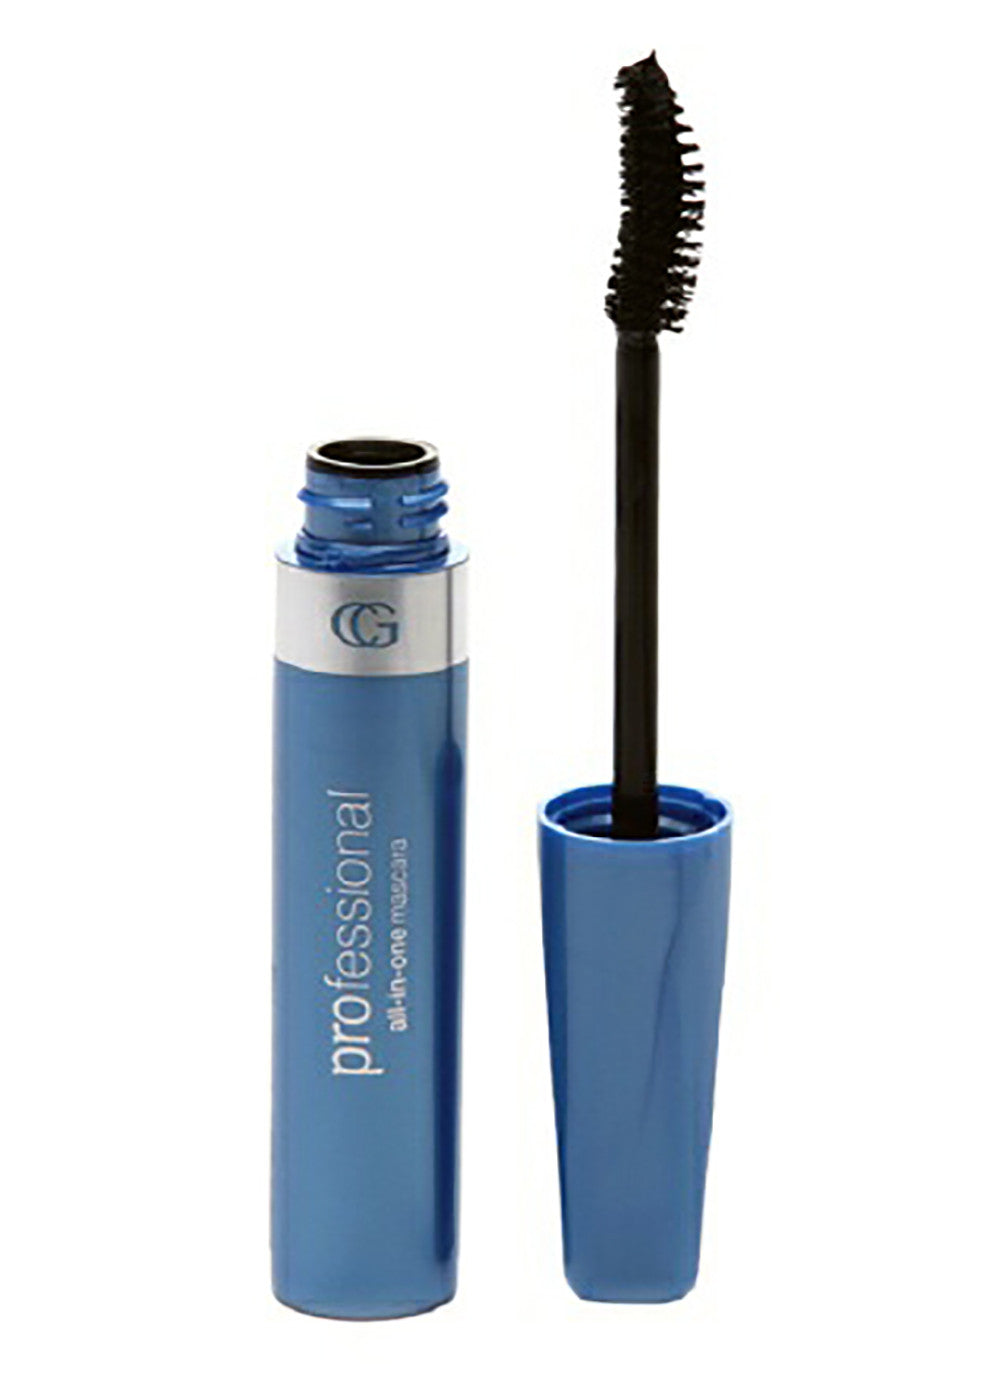 CoverGirl Professional All In One Curved Brush Mascara #110 Black